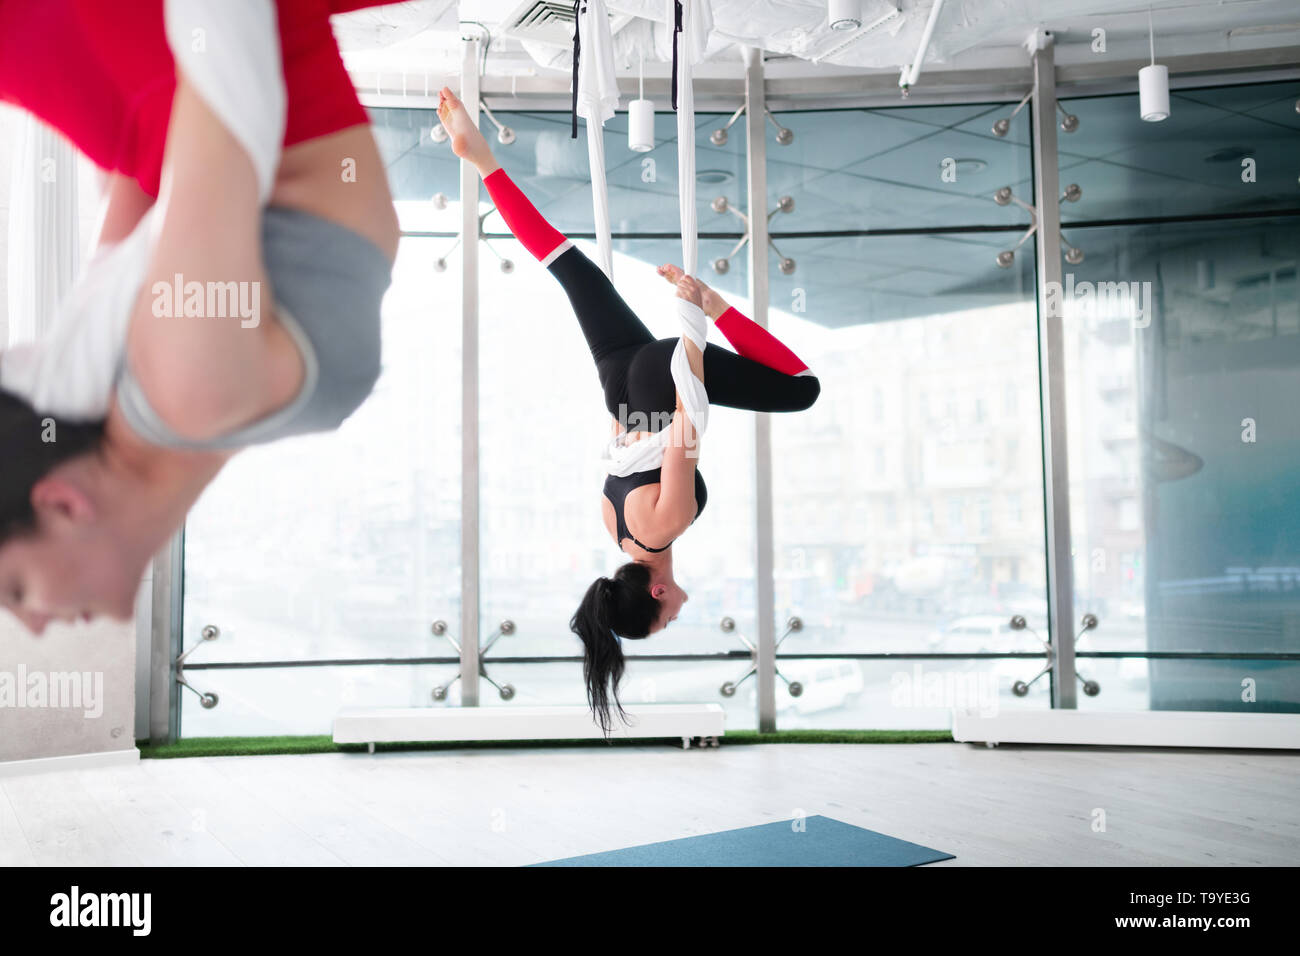 Two women wearing comfy leggings doing aerial yoga together - Stock Image